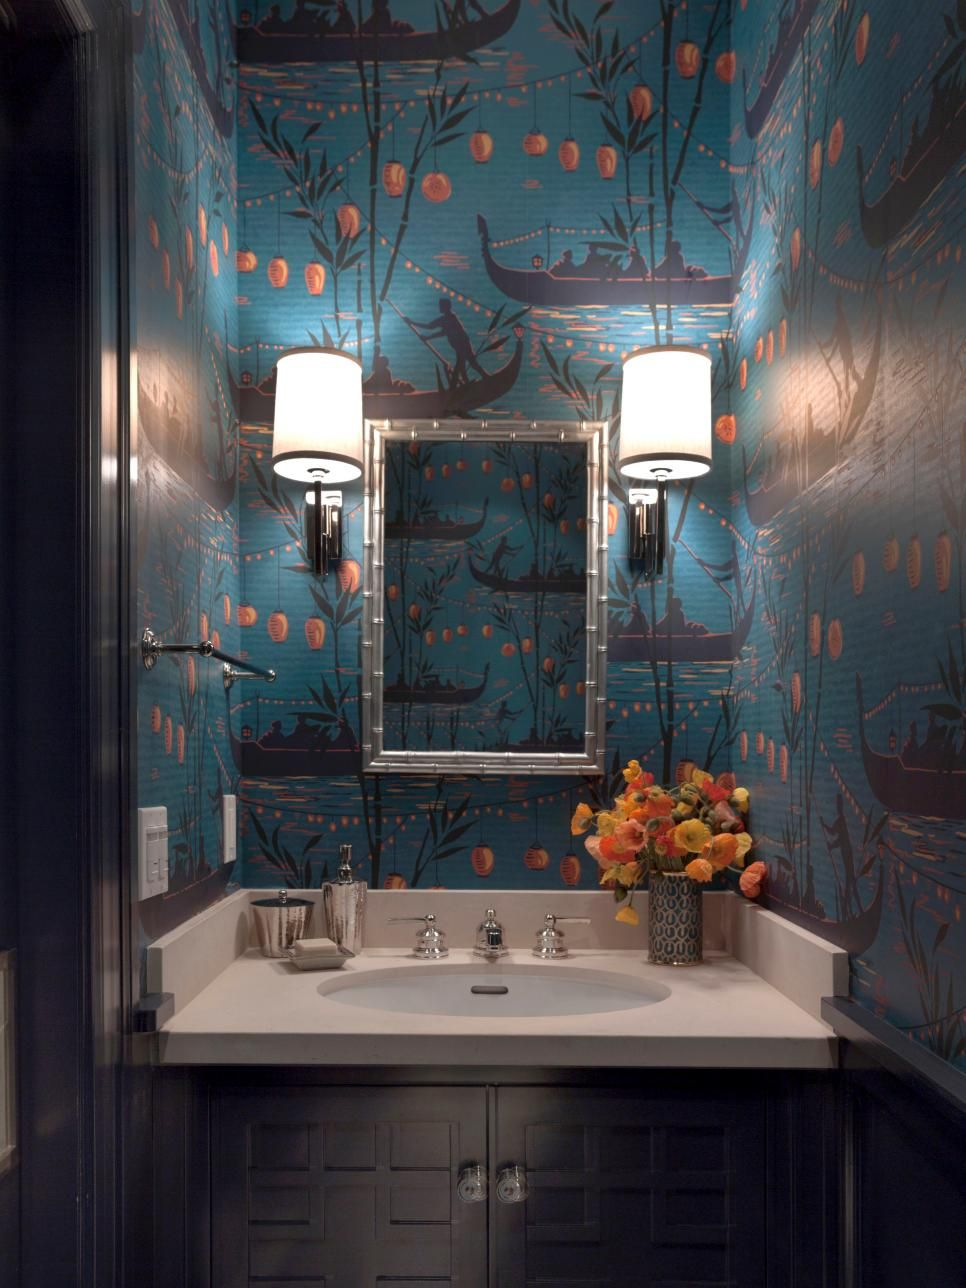 Unique wallpaper powder room design by Ann Lowengart in